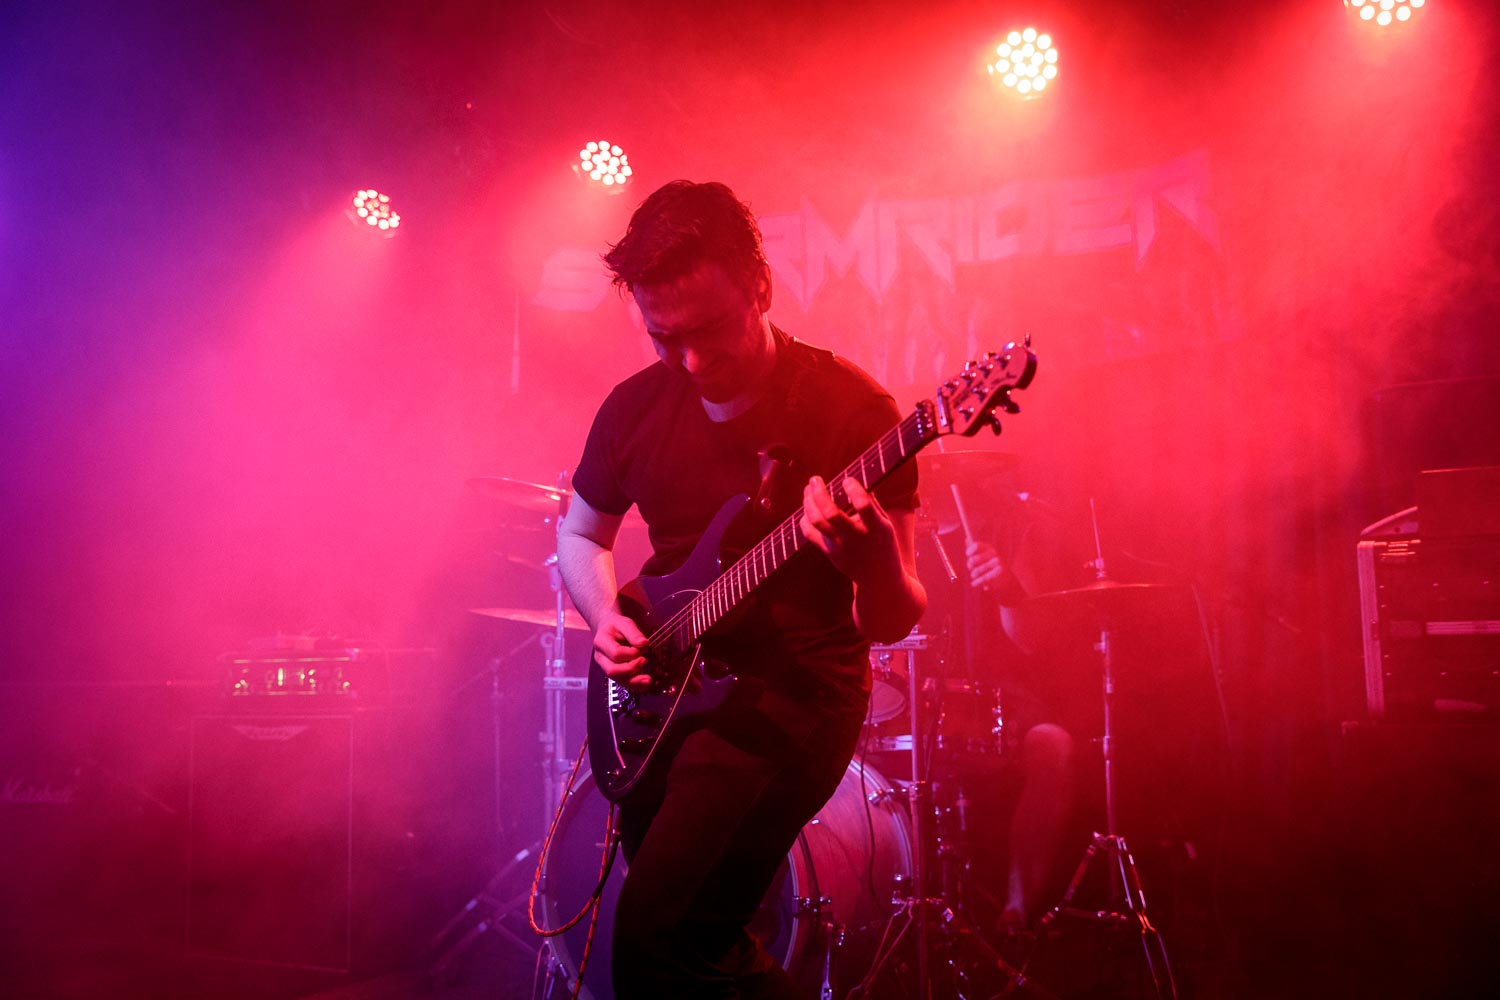 Stormrider live at Rebellion in Manchester on February 1st 2019